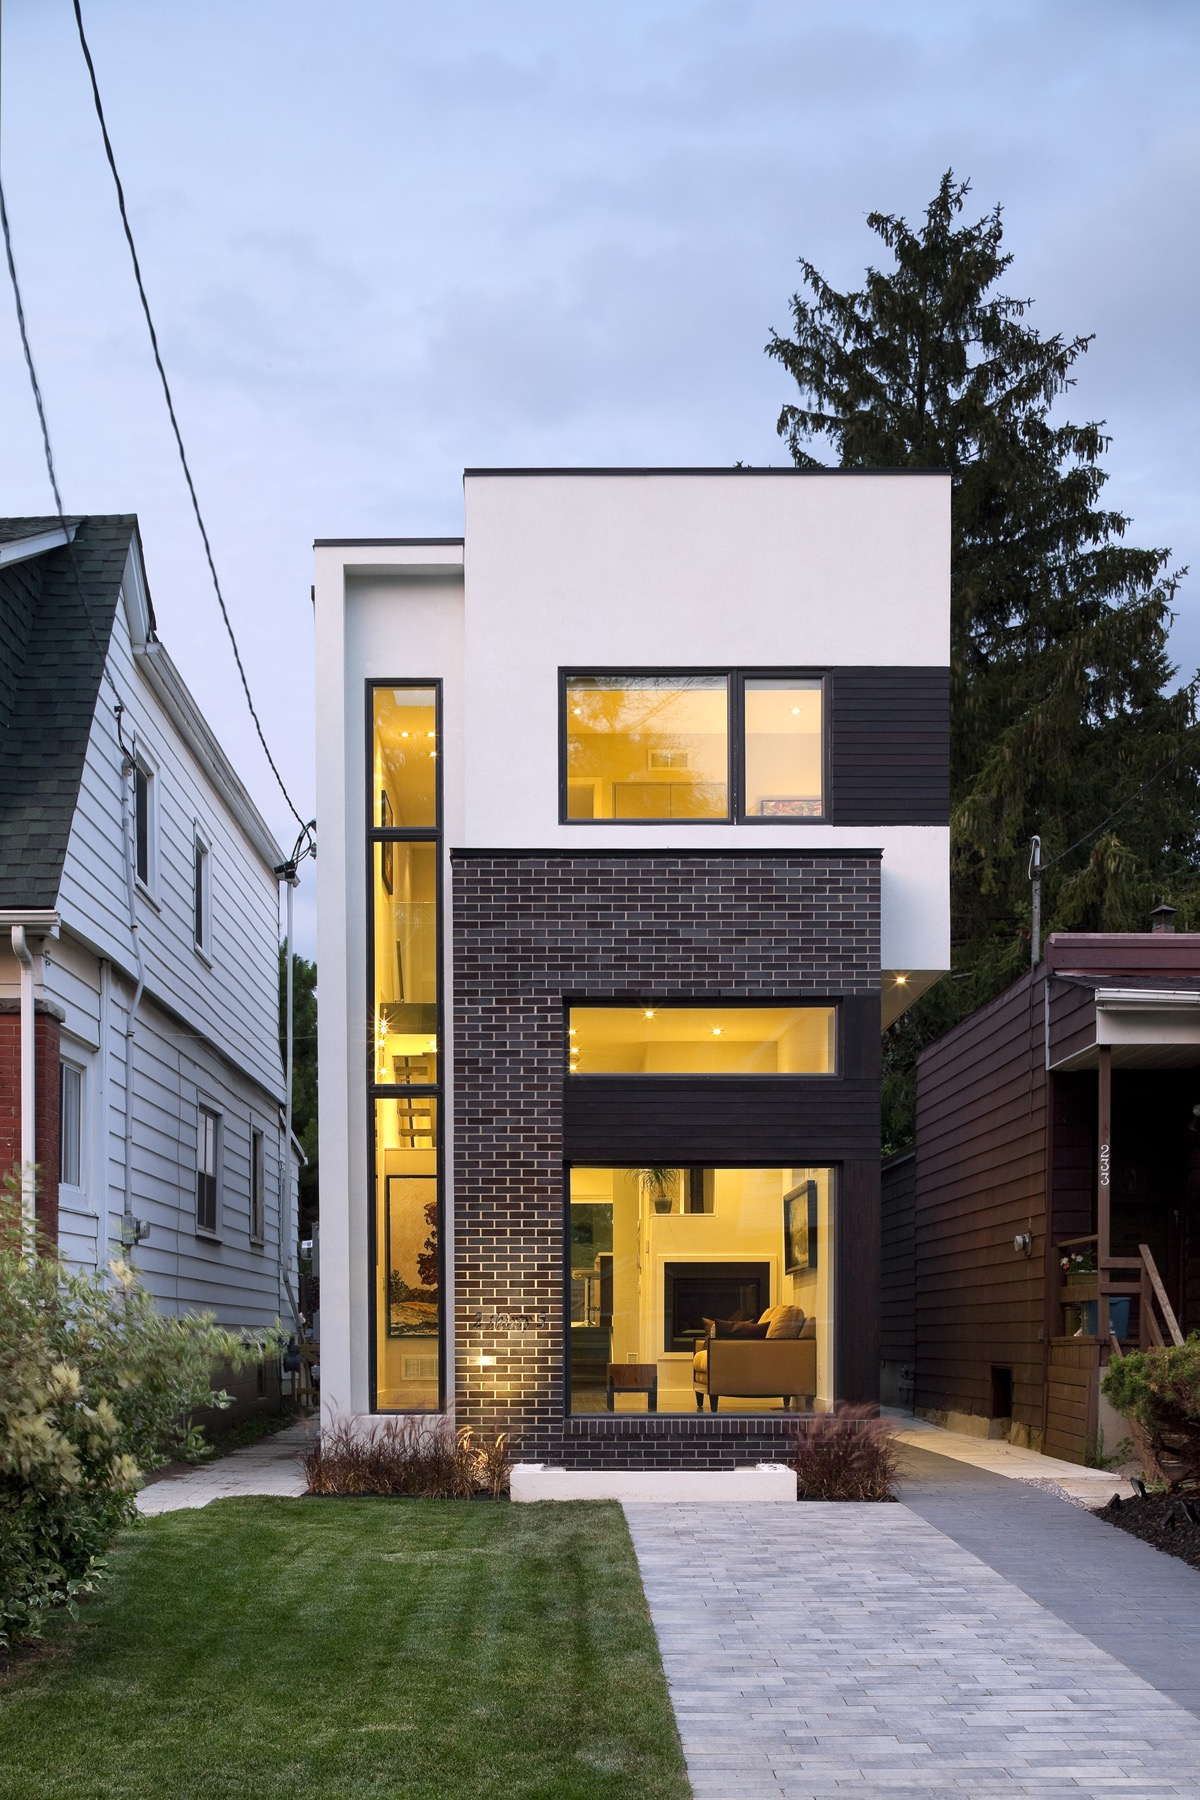 50 Narrow Lot Houses That Transform A Skinny Exterior Into Something Special images 46